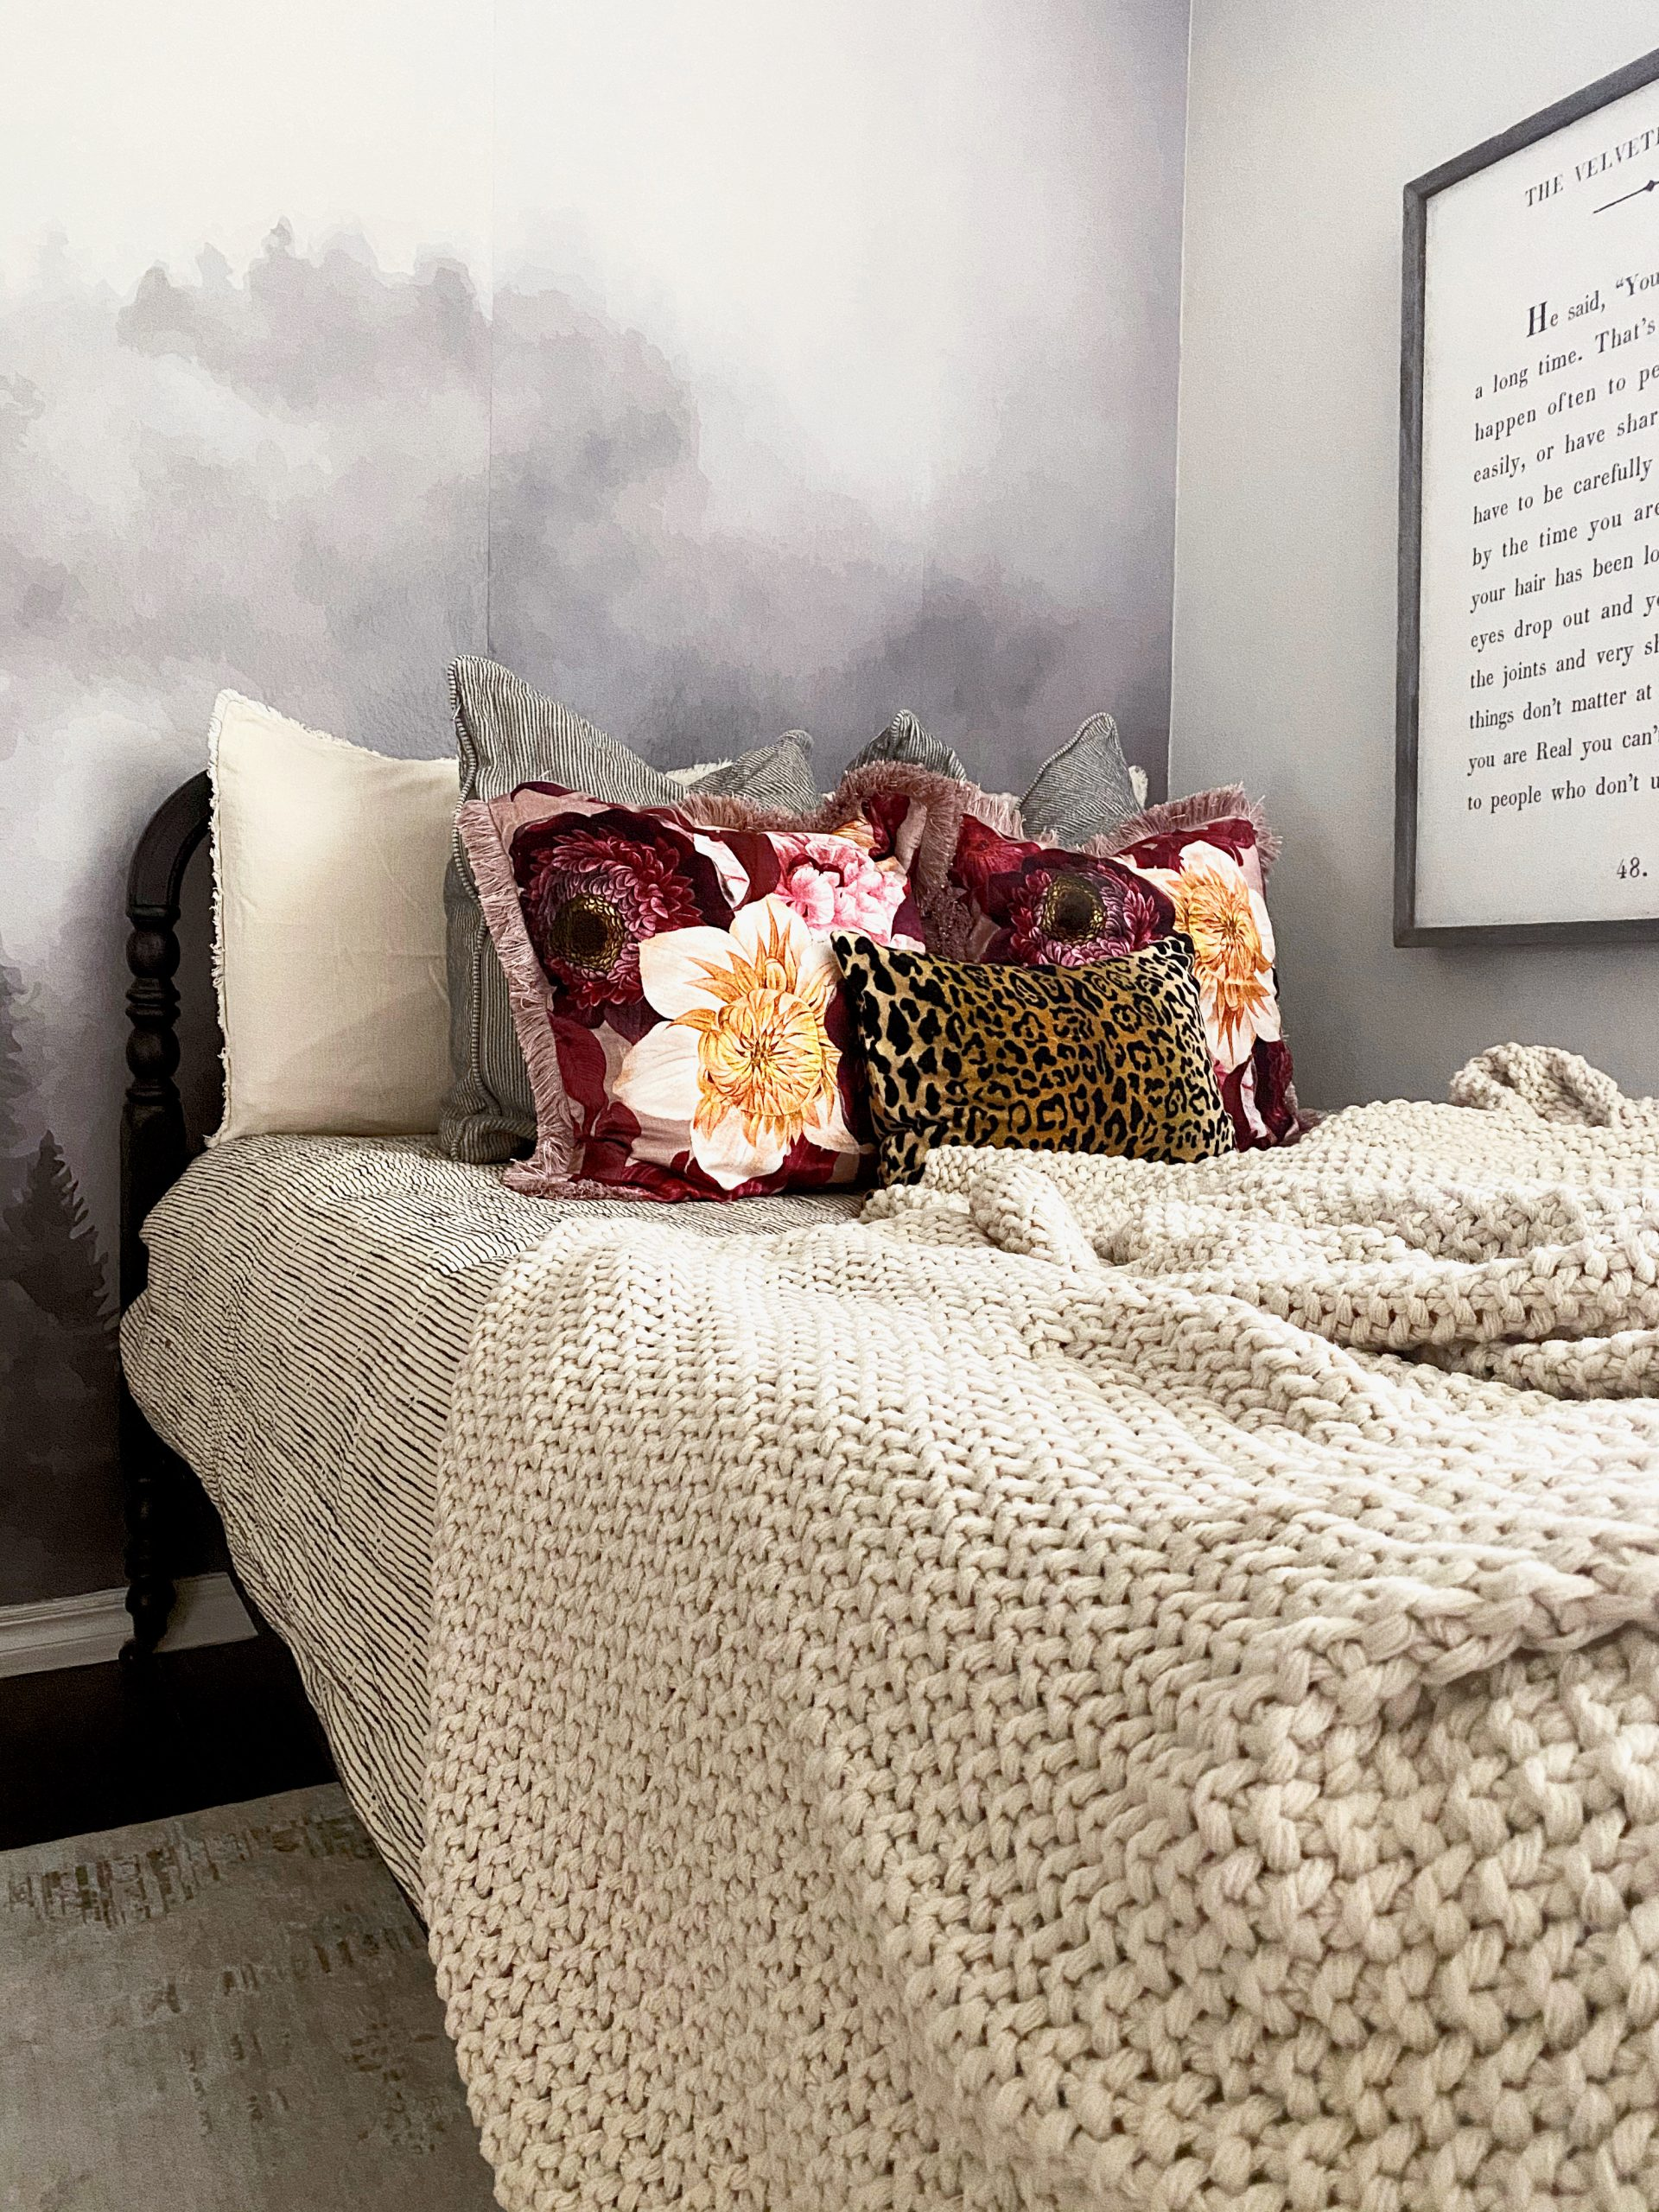 The Chunky Knit Bed Blanket by Casaluna